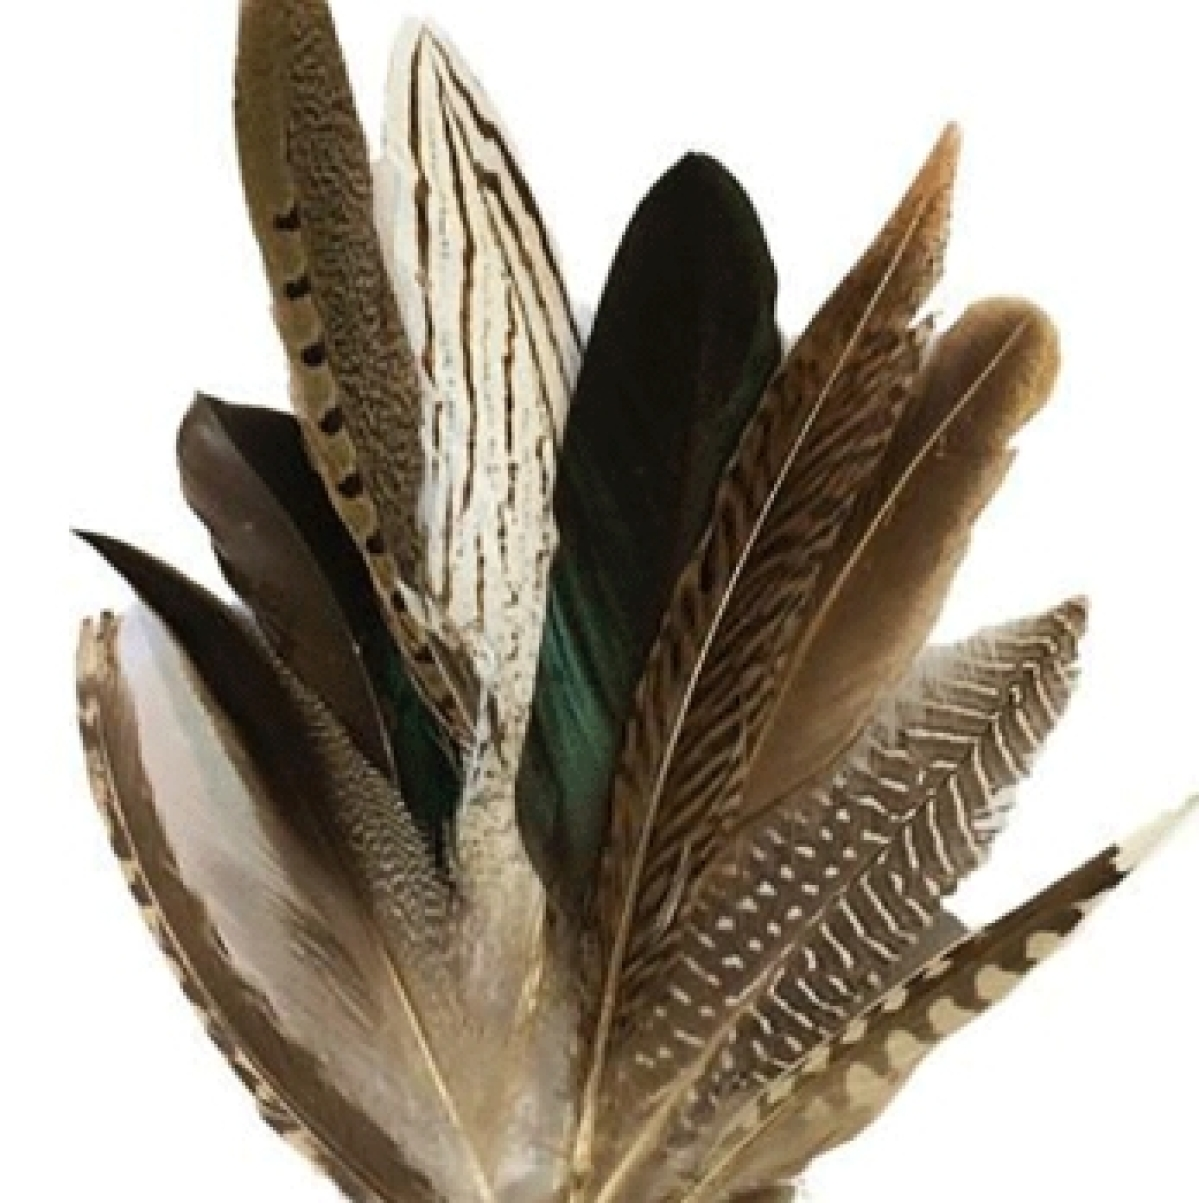 Feathers came before birds, finds study